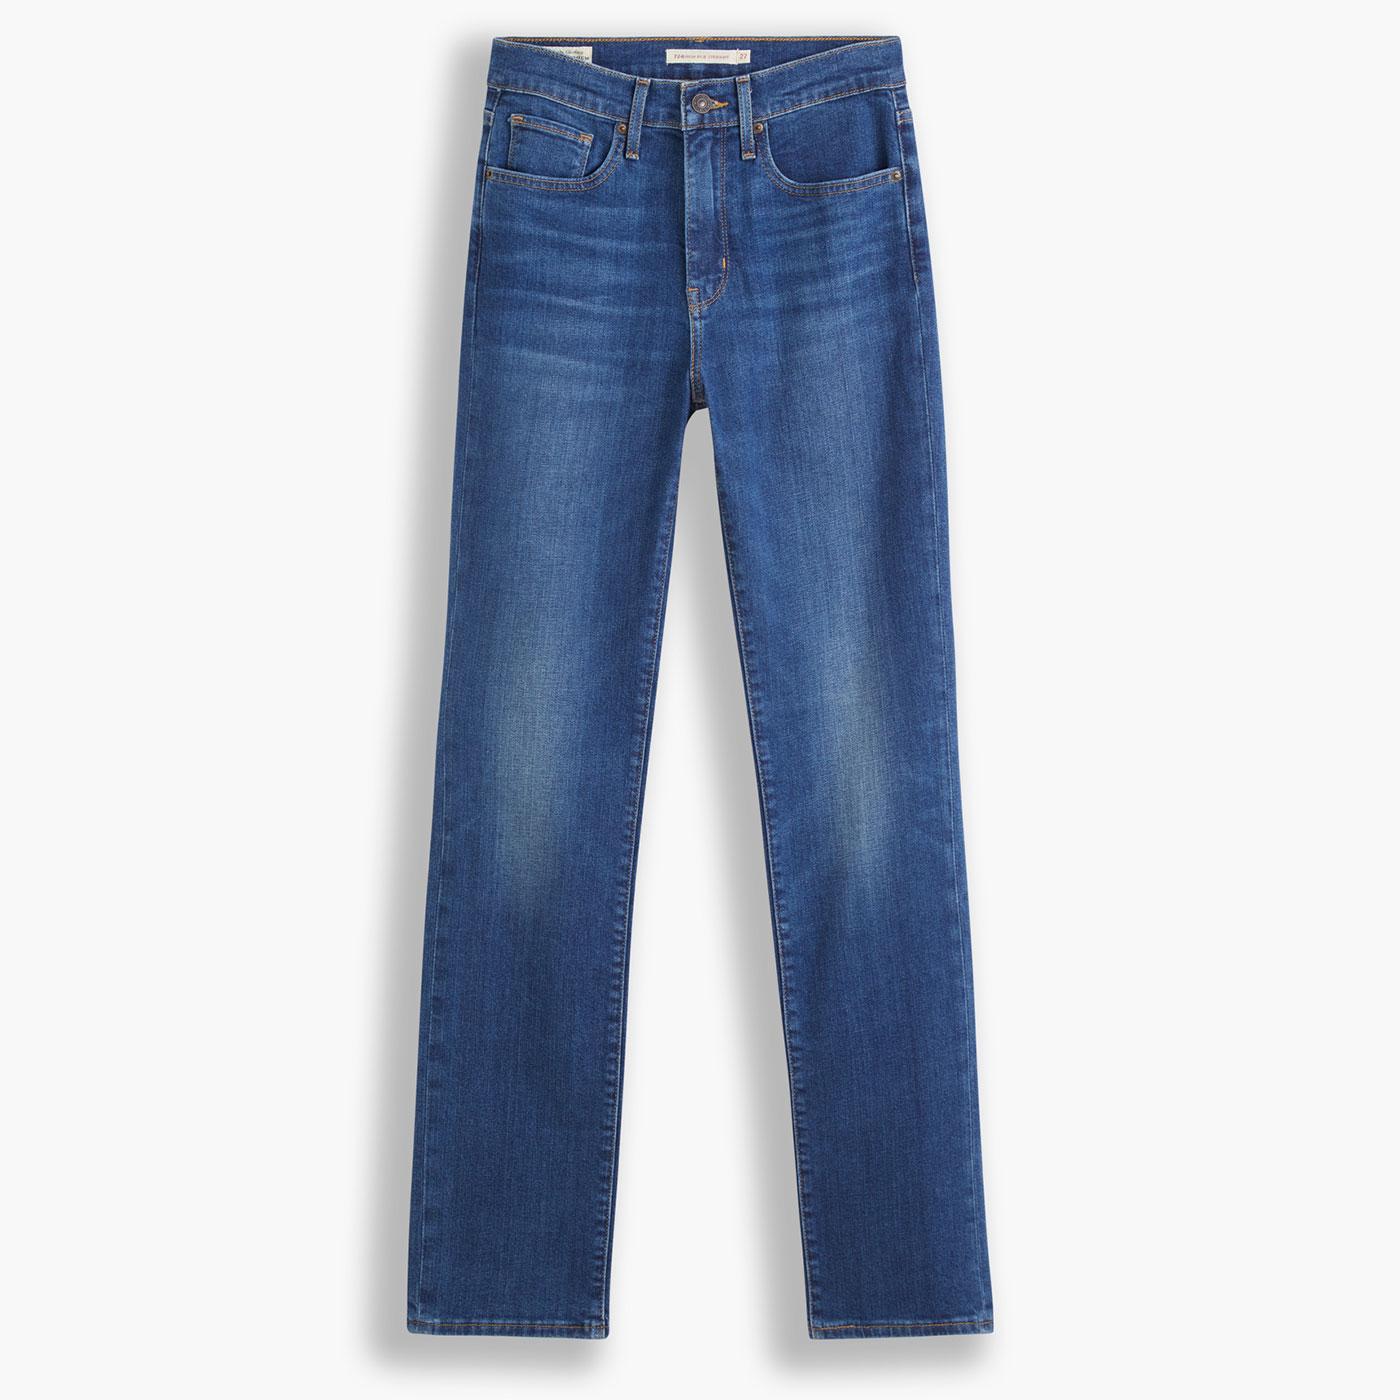 LEVI'S 724 High Rise Straight Jeans in Nonstop